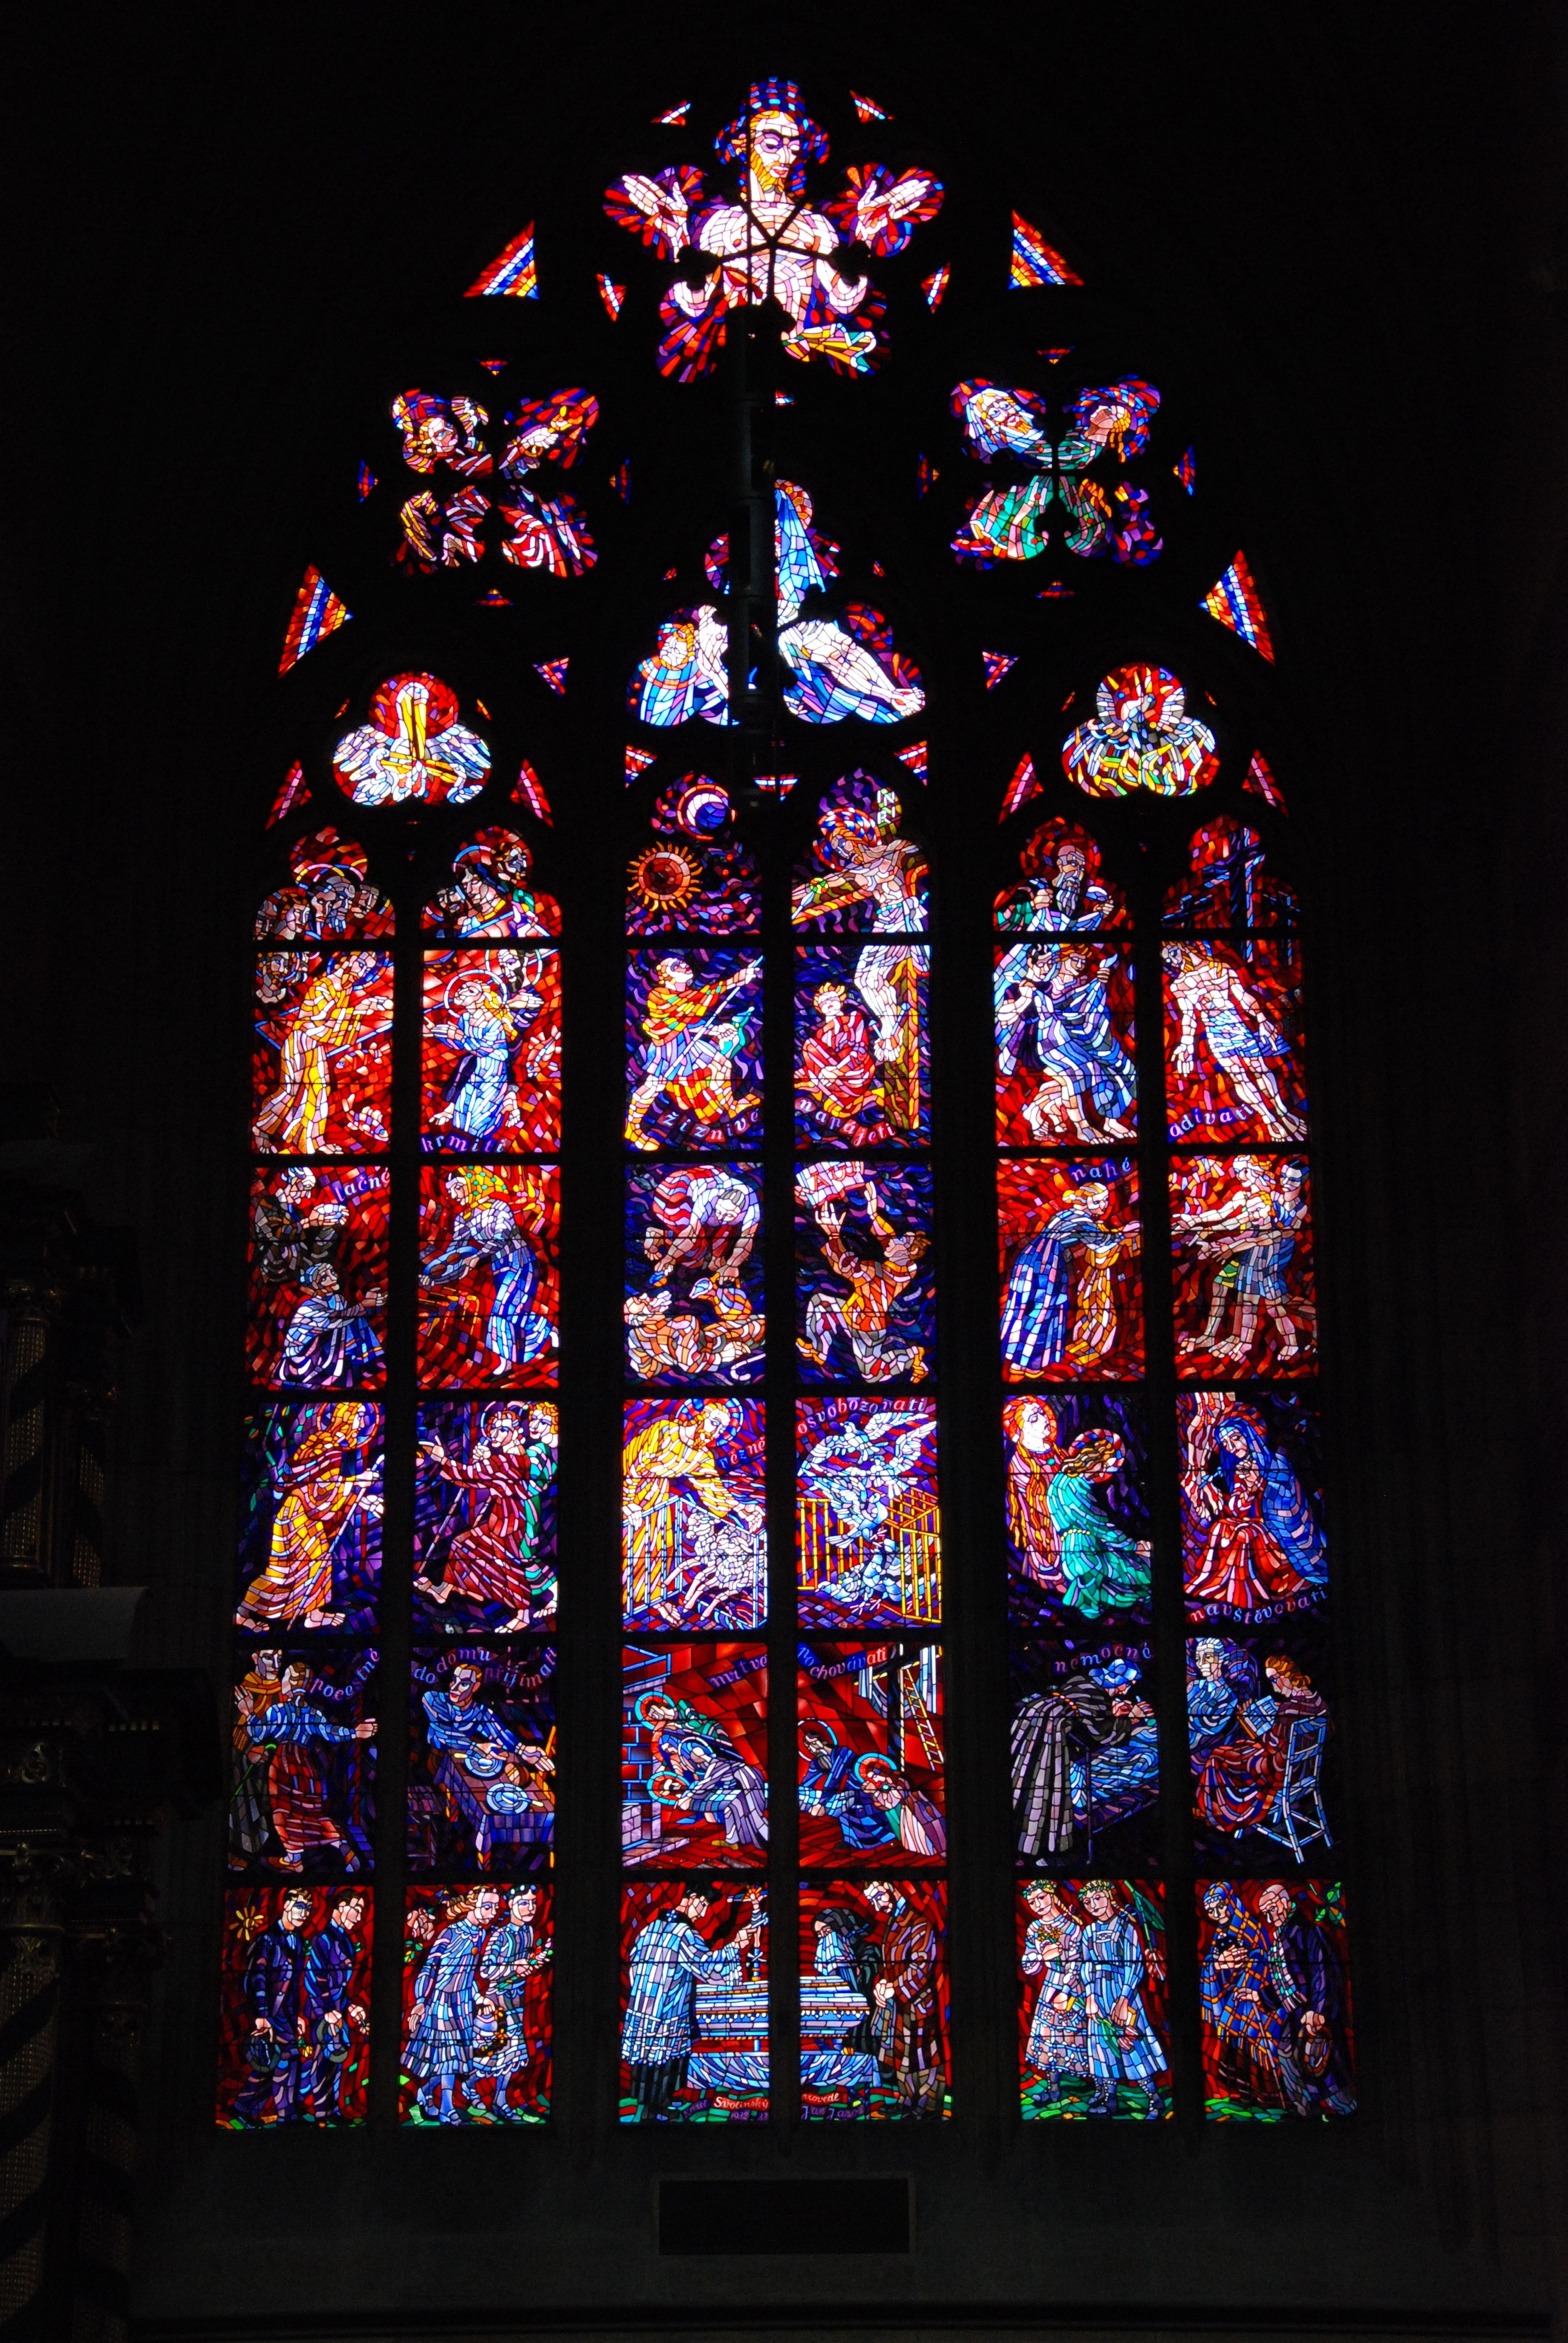 Huge stainedglass window in St Vitus cathedral  cc0photo